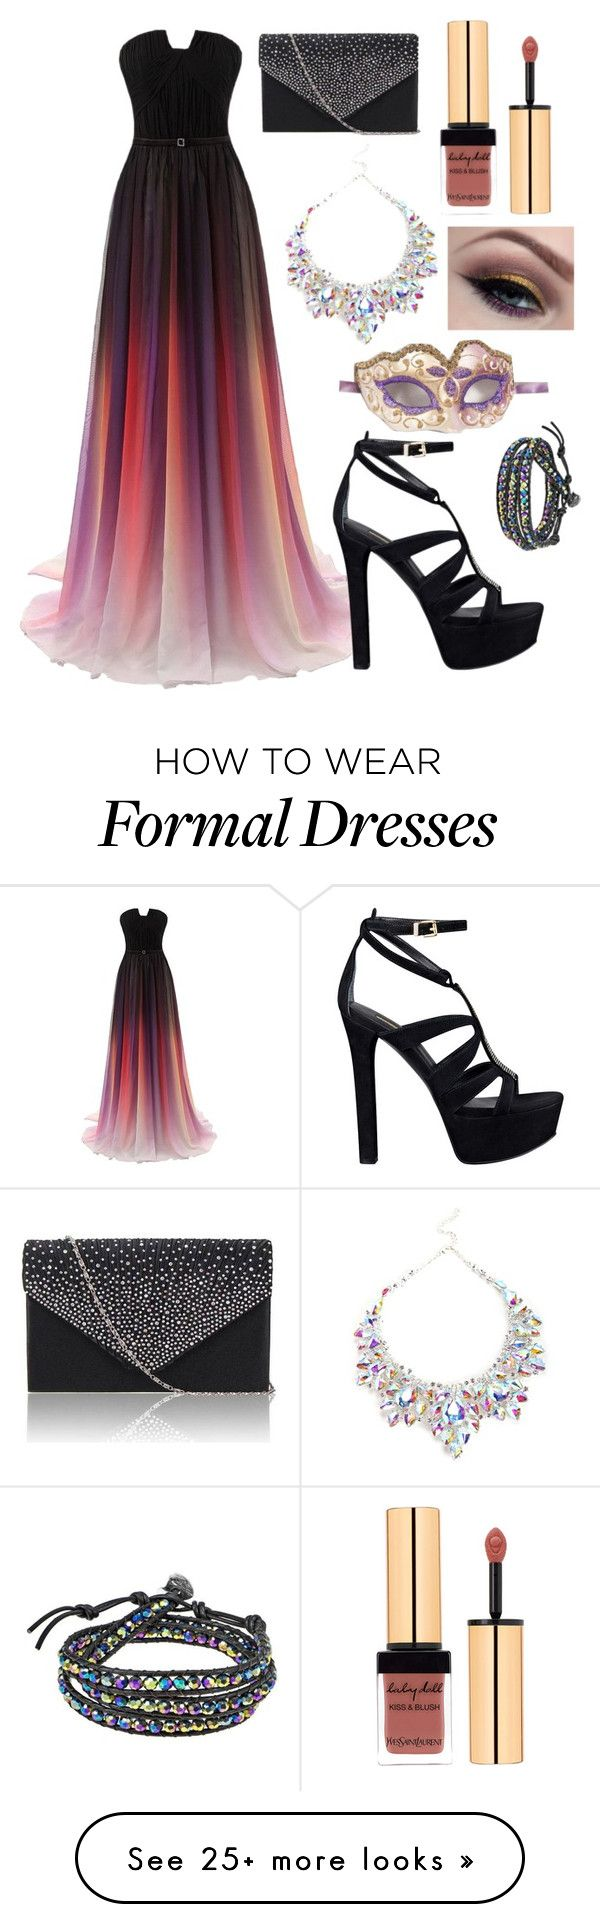 """masquerade ball"" by winternightfrostbite on Polyvore featuring GUESS, AeraVida, Masquerade, women's clothing, women, female, woman, misses and juniors"